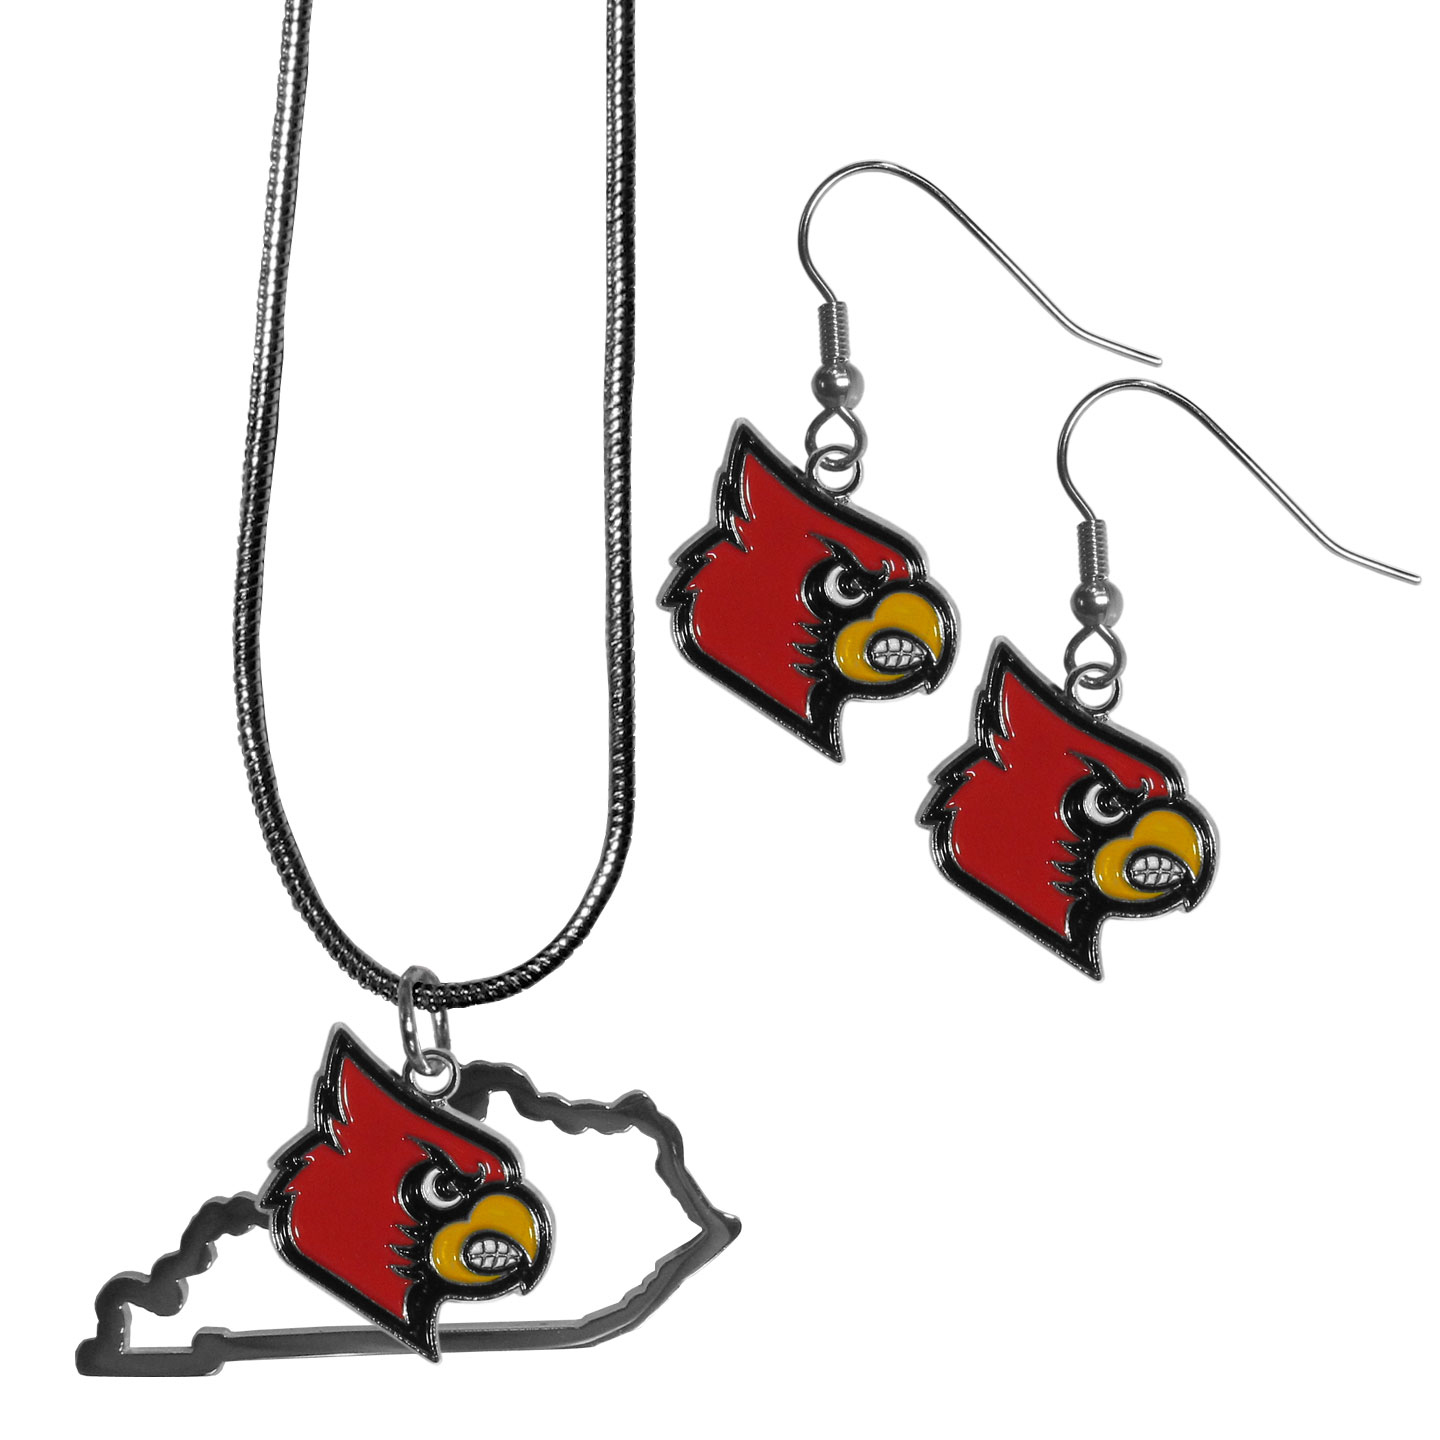 Louisville Cardinals Dangle Earrings and State Necklace Set - Get in on the trend! State themes are a trend that just keeps getting more popular and this jewelry set takes the state style and give it a sporty twist with a Louisville Cardinals necklace that features an Arizona state outline charm paired with a beautiful team charm and matching team charm dangle earrings. The earrings feature hypoallergenic fishhook posts that are nickel free.